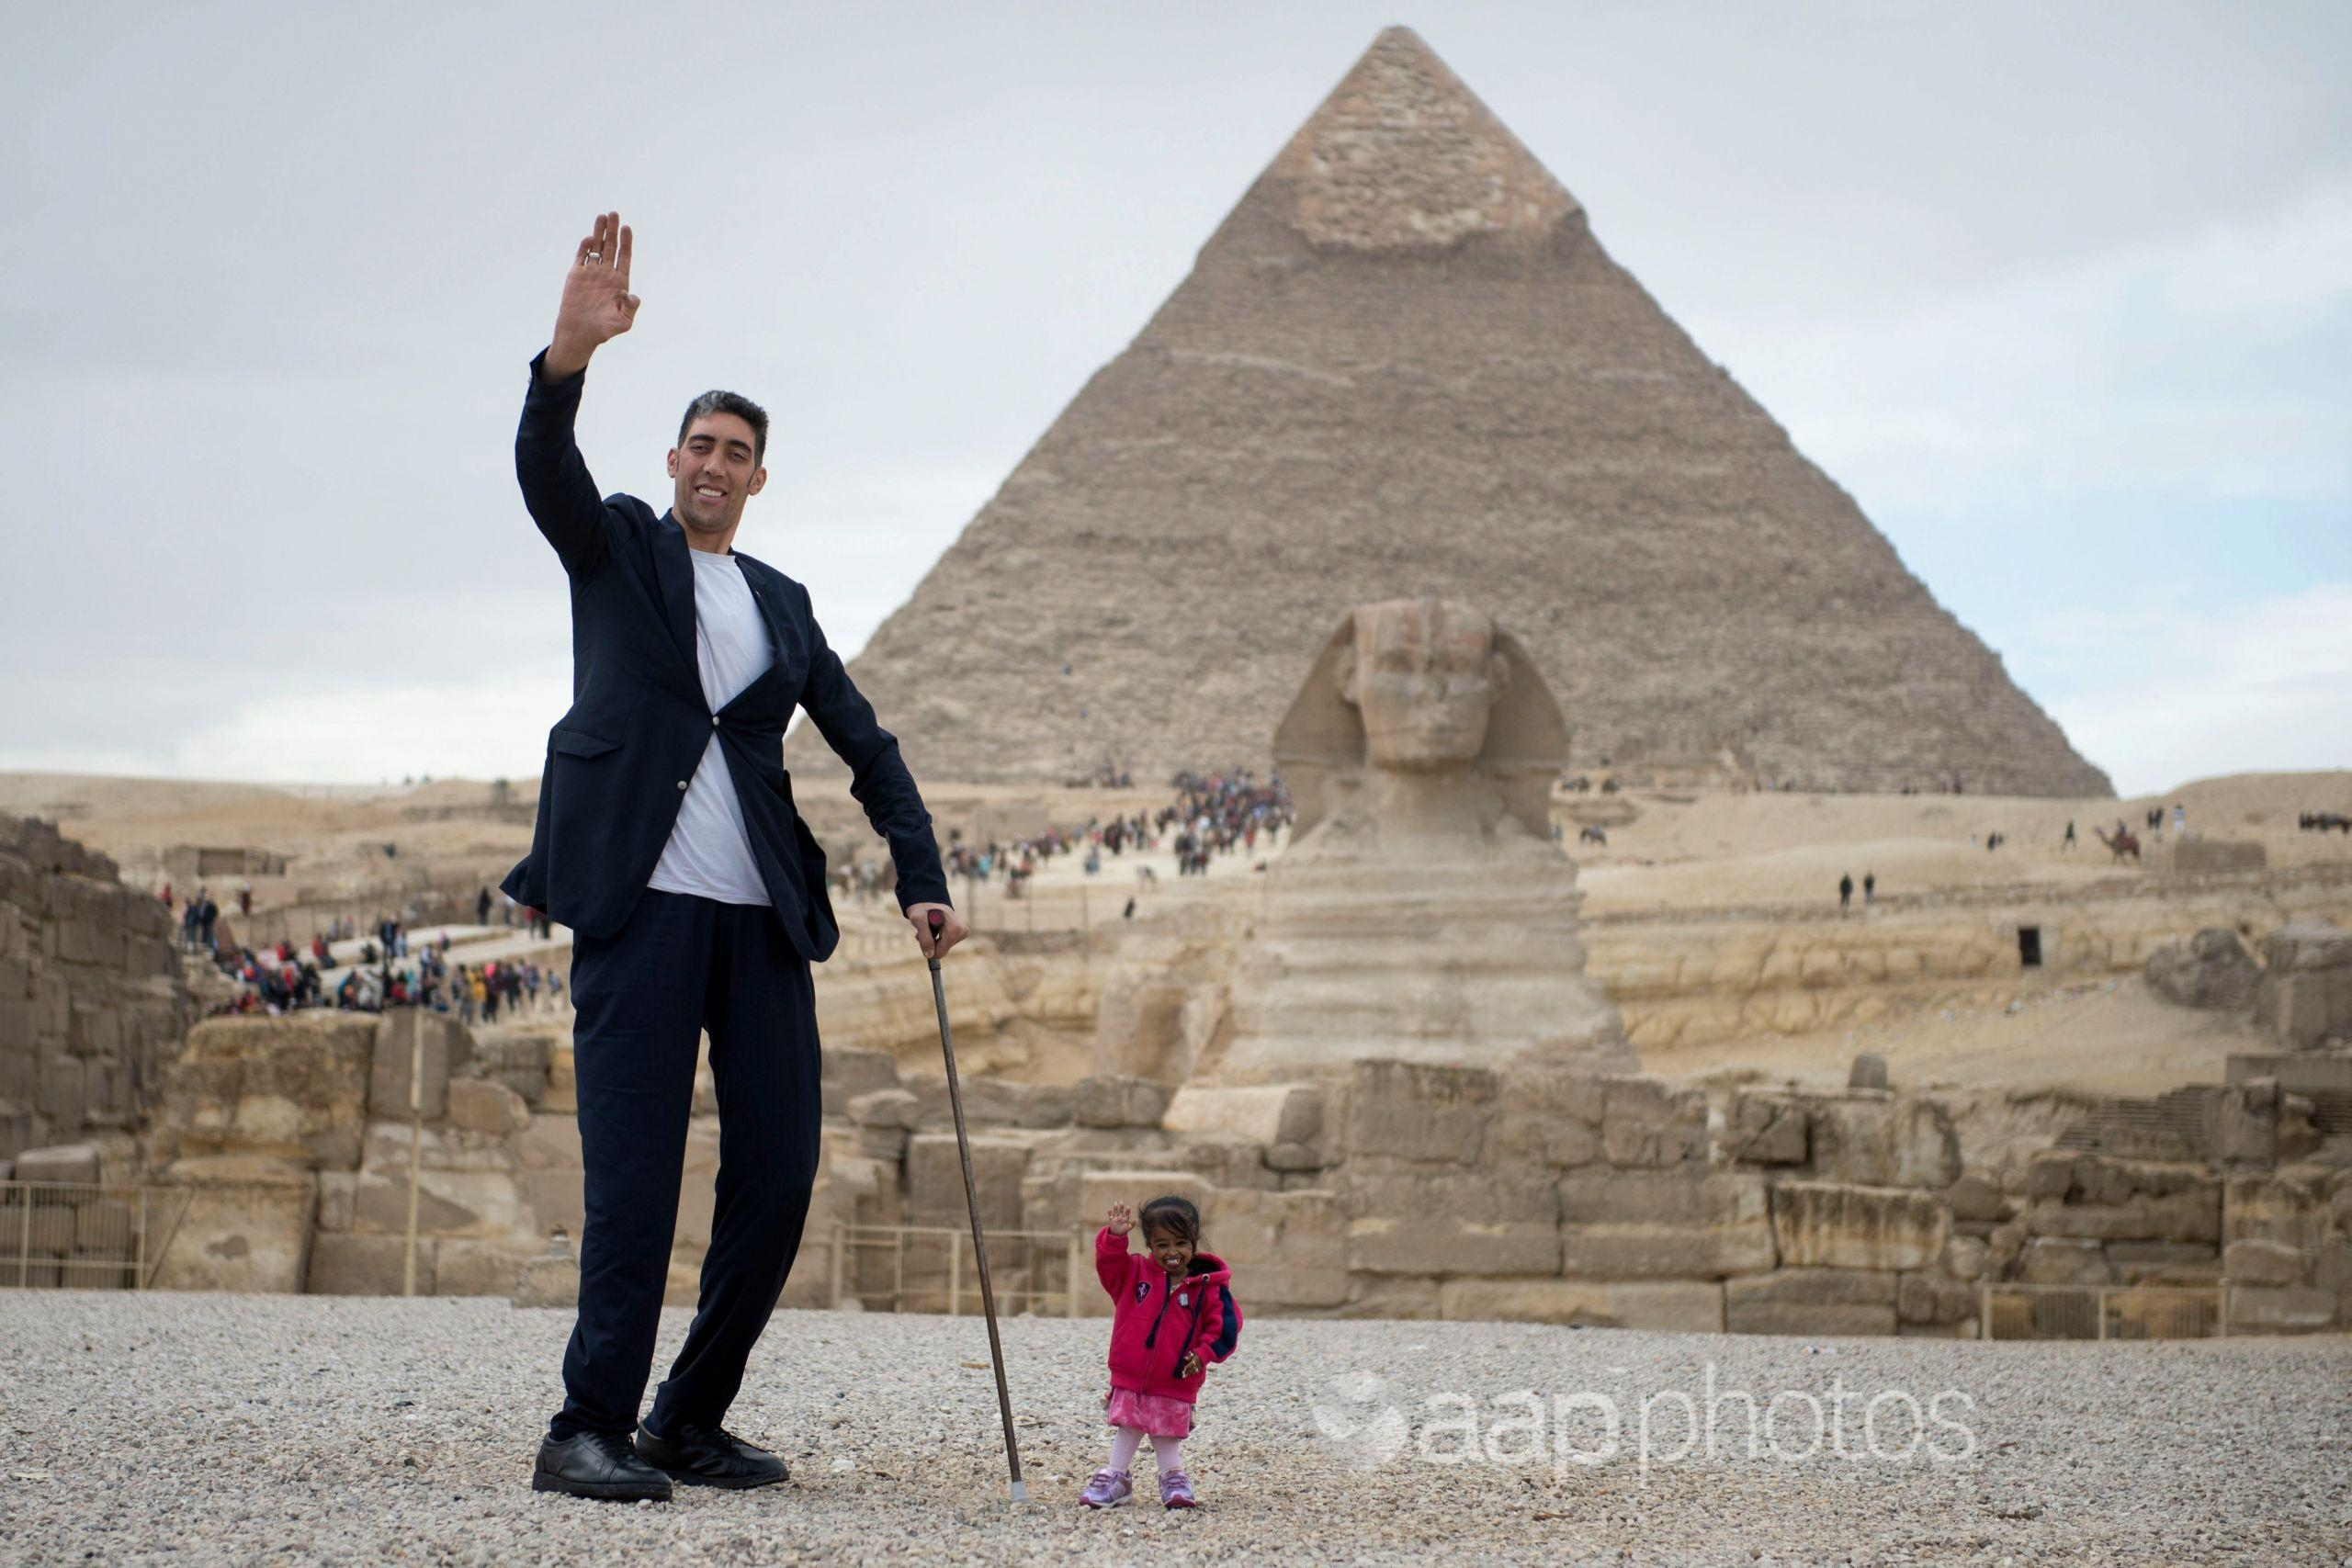 World's tallest man and the shortest woman